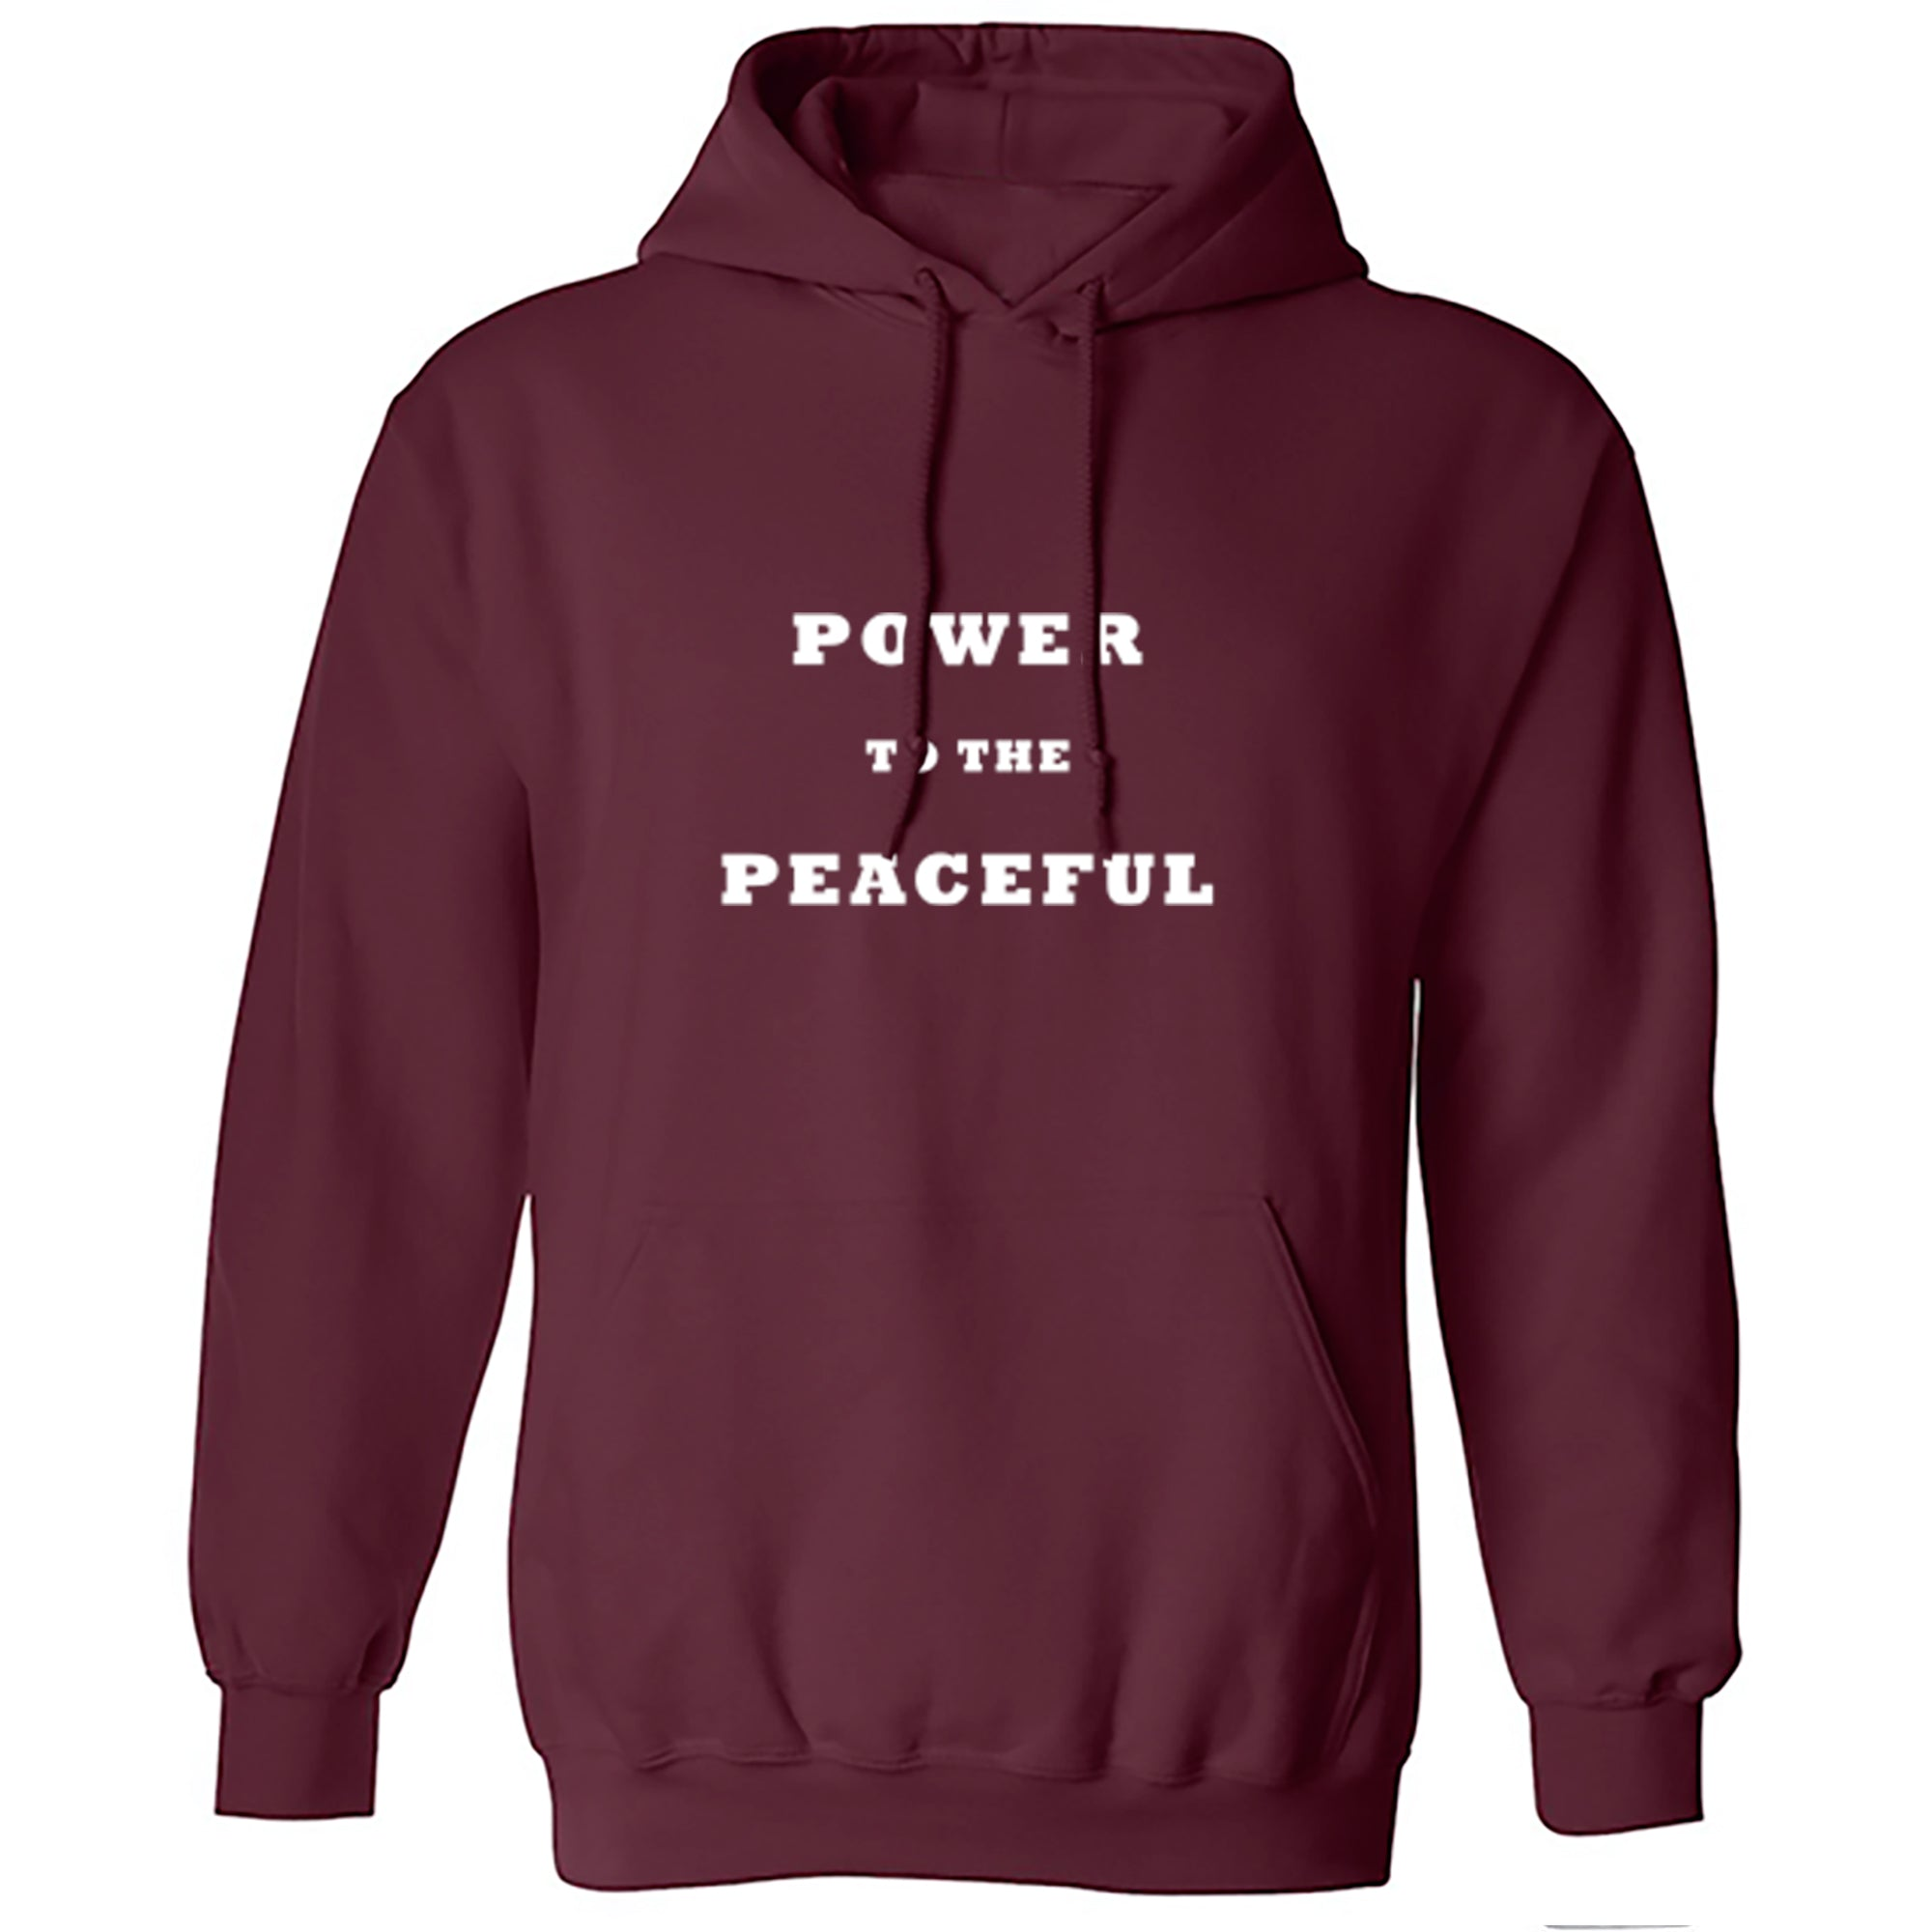 Power To The Peaceful Unisex Hoodie A0091 - Illustrated Identity Ltd.